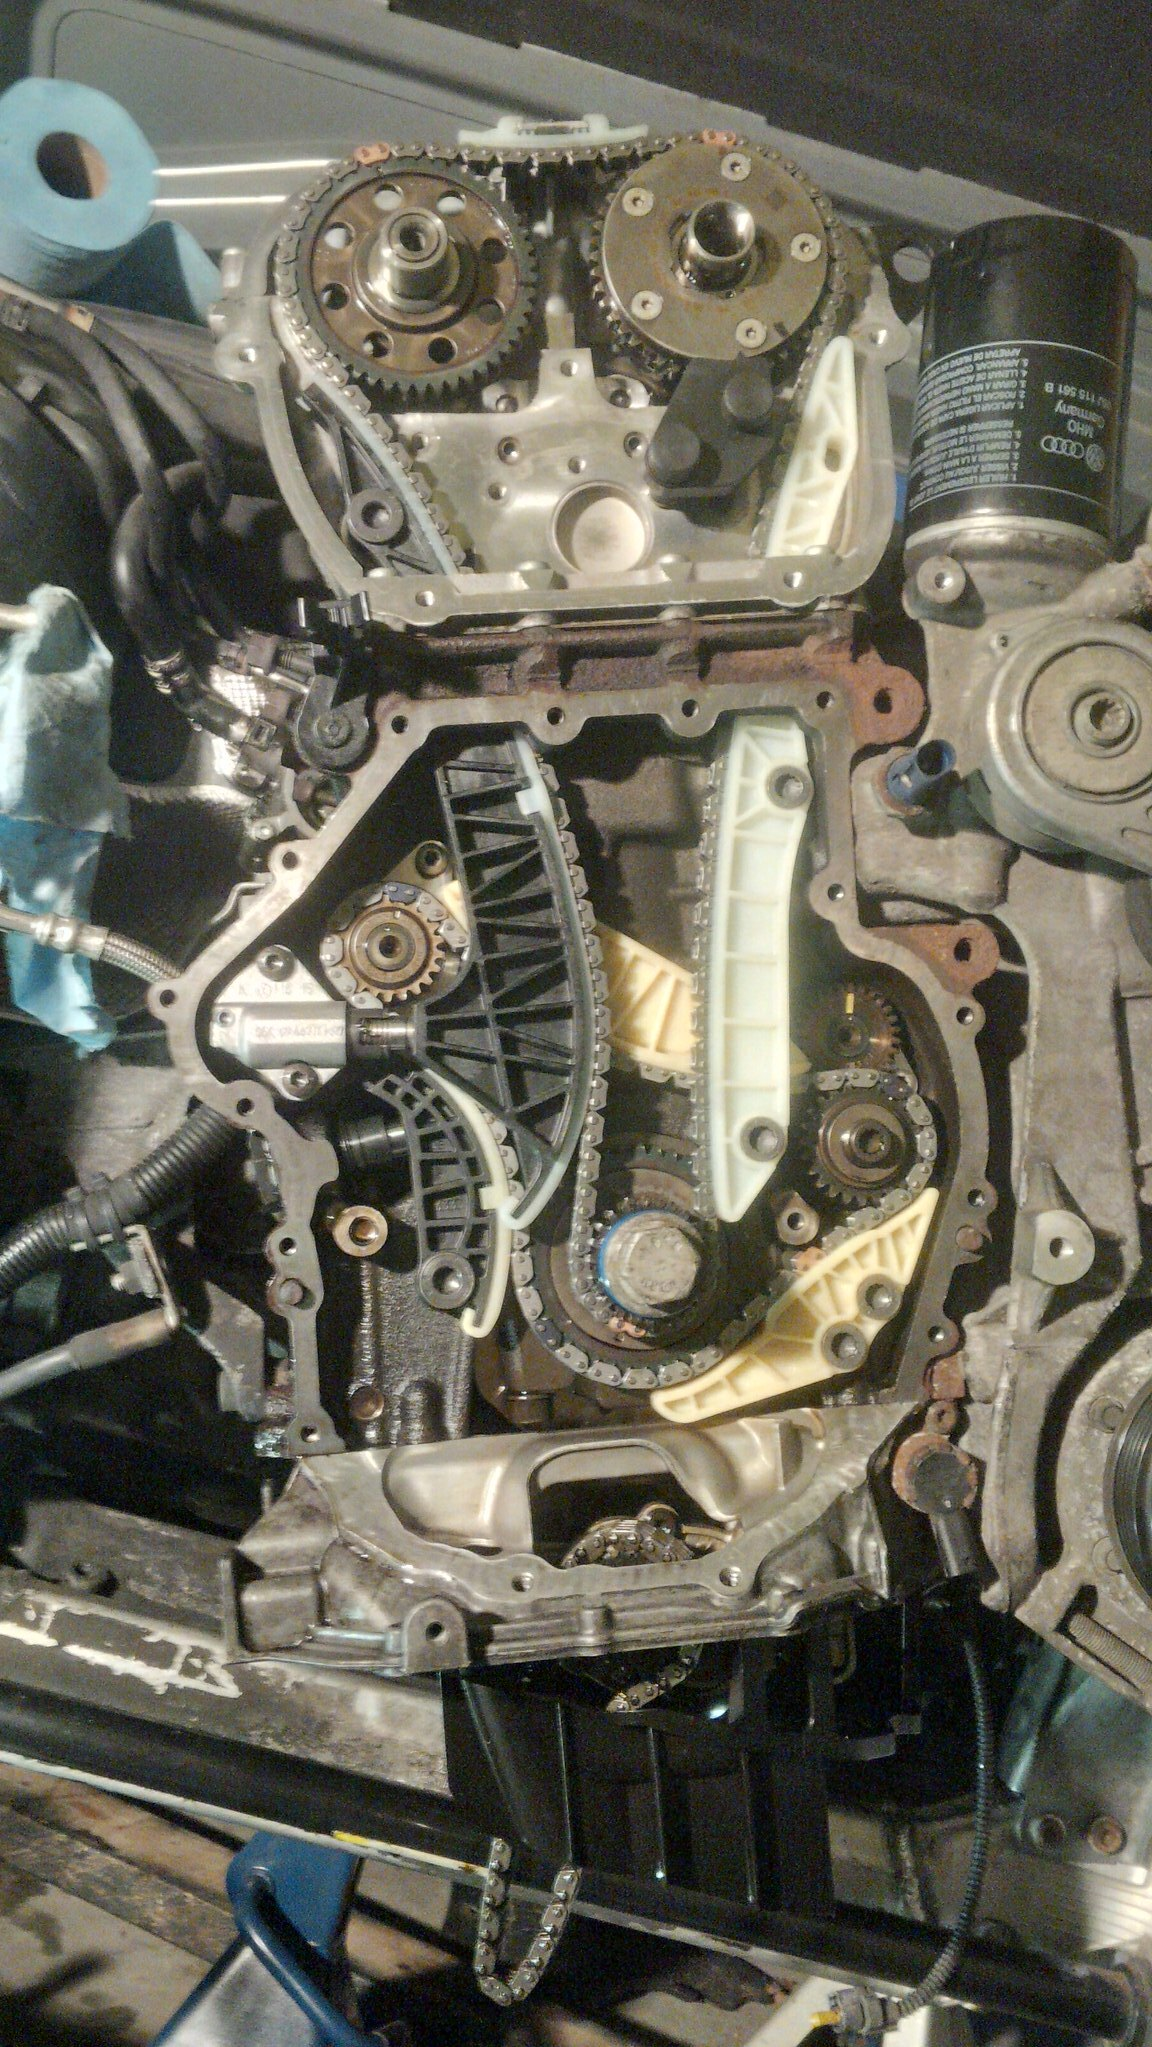 a4 b8 timing chain job p0016 rh audizine com Timing-Chain Passat 2 0 Turbo Rabbit Timing-Chain 06